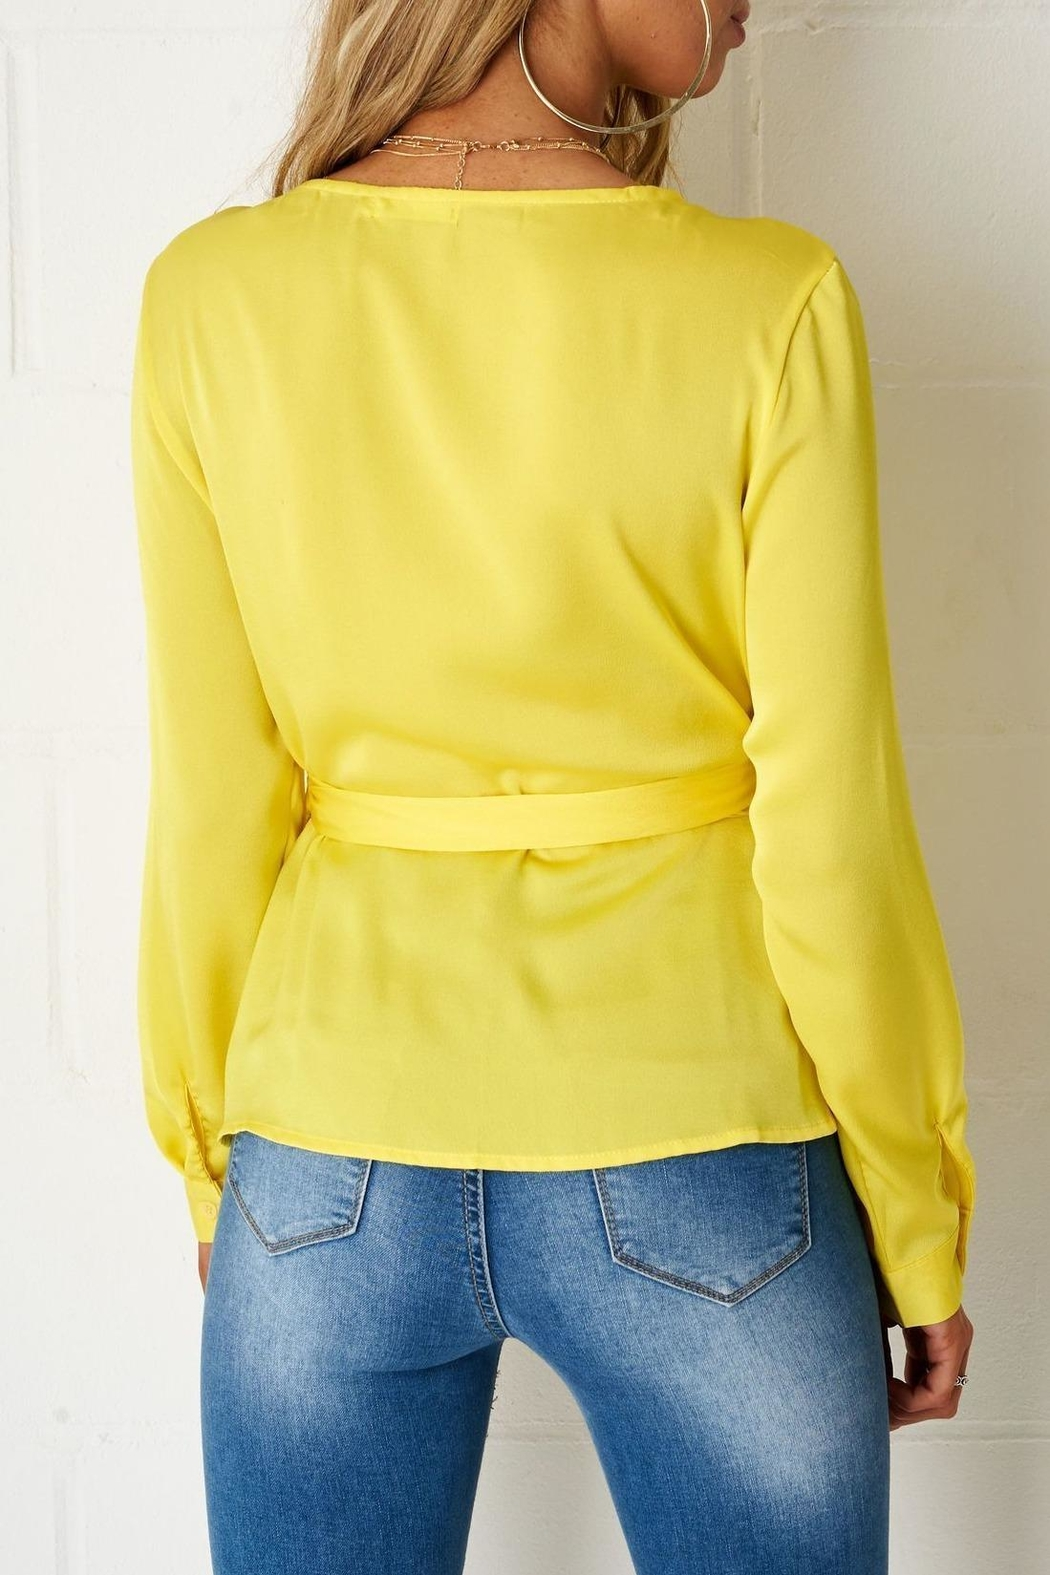 frontrow Yellow Wrap Top - Front Full Image